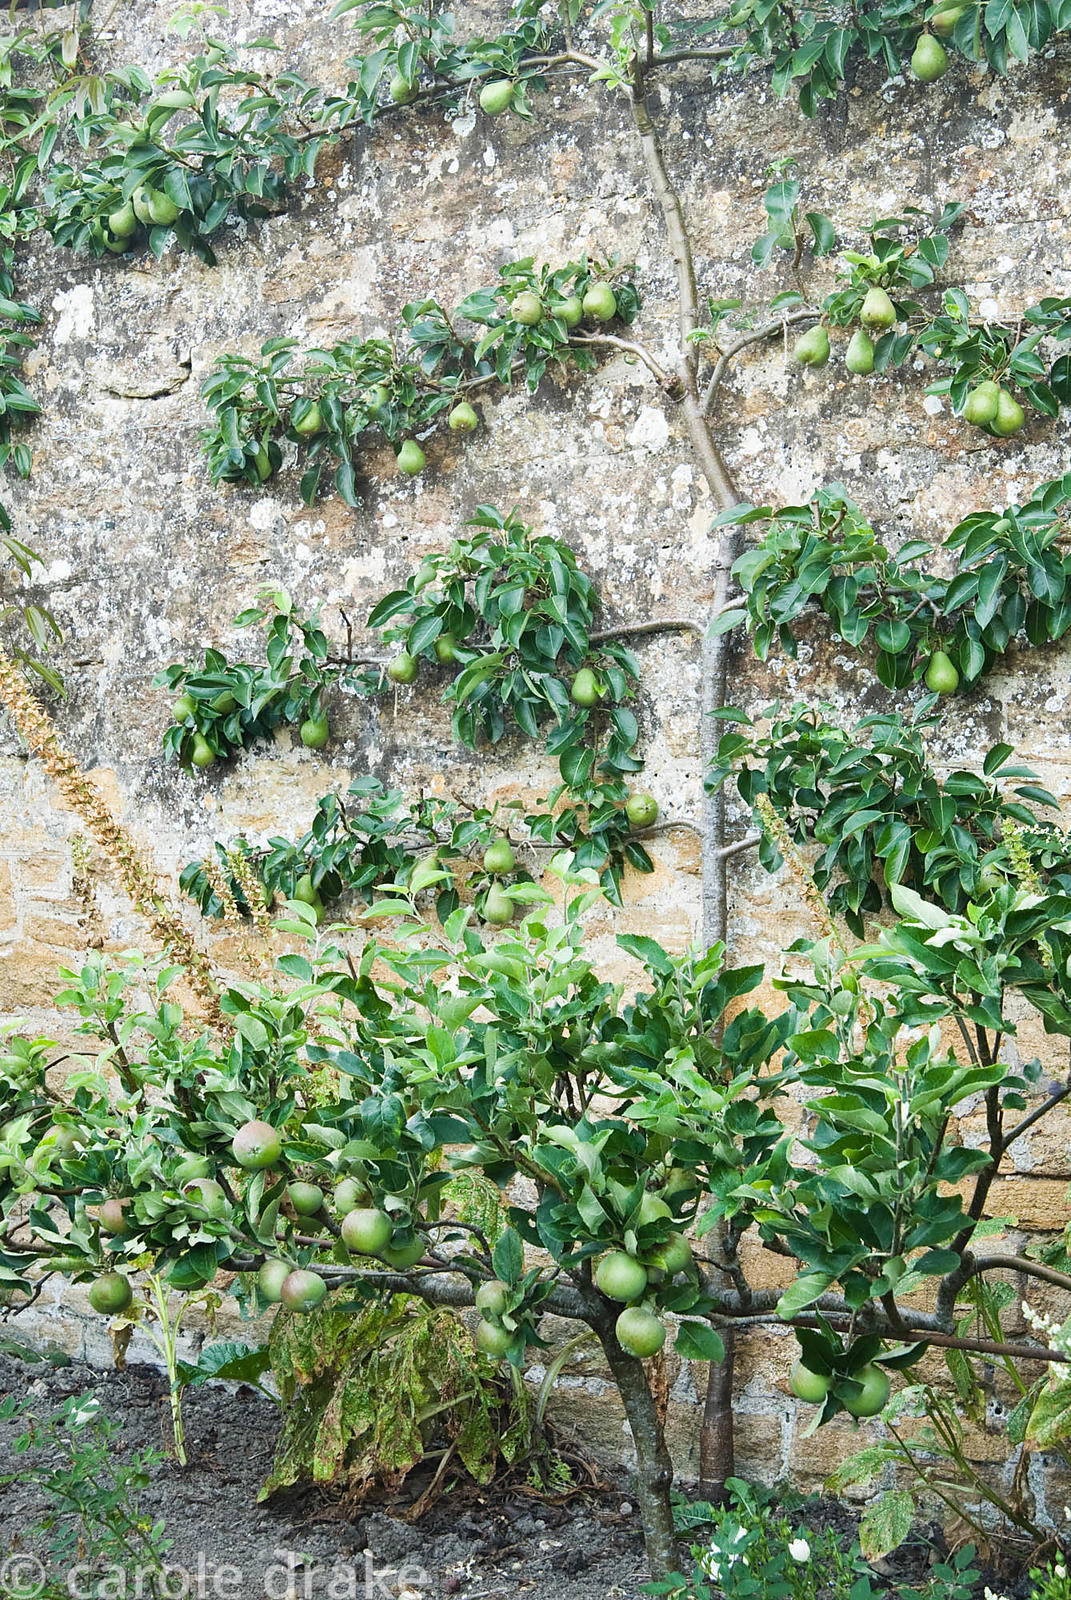 Espaliered pear with step over apples in front. Yews Farm, Martock, Somerset, UK